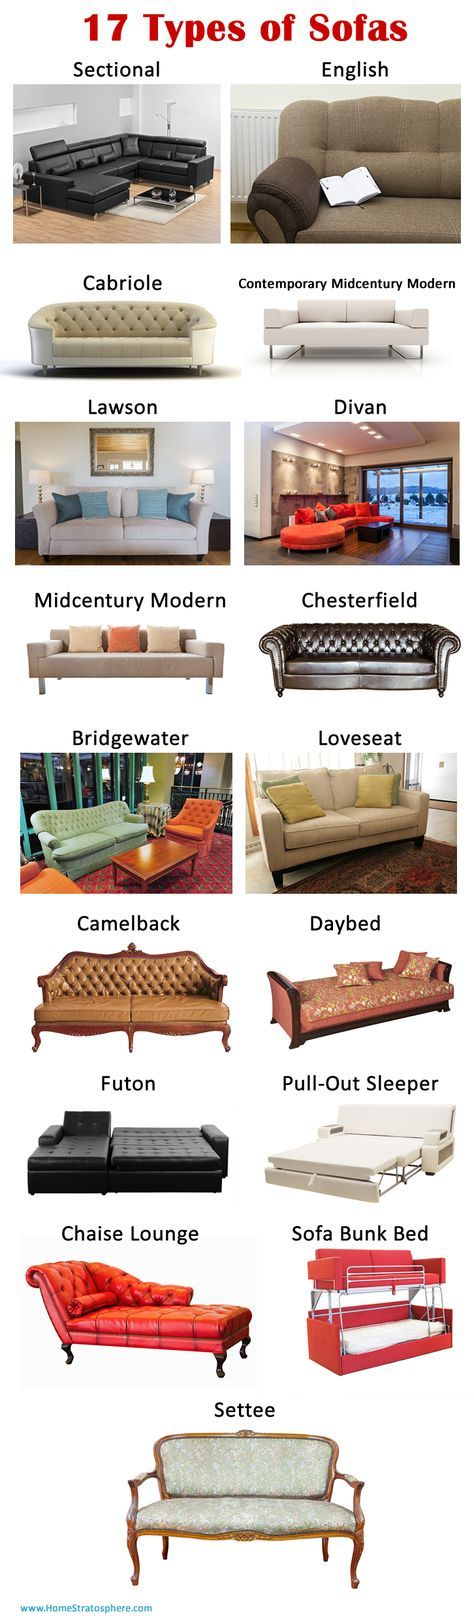 Type Of Furniture Design all type of furniture on rent ahmedabad gorenty post free rent ads website 17 Types Of Sofas Click Pin For An Explanation For Each Type Of Sofa Design